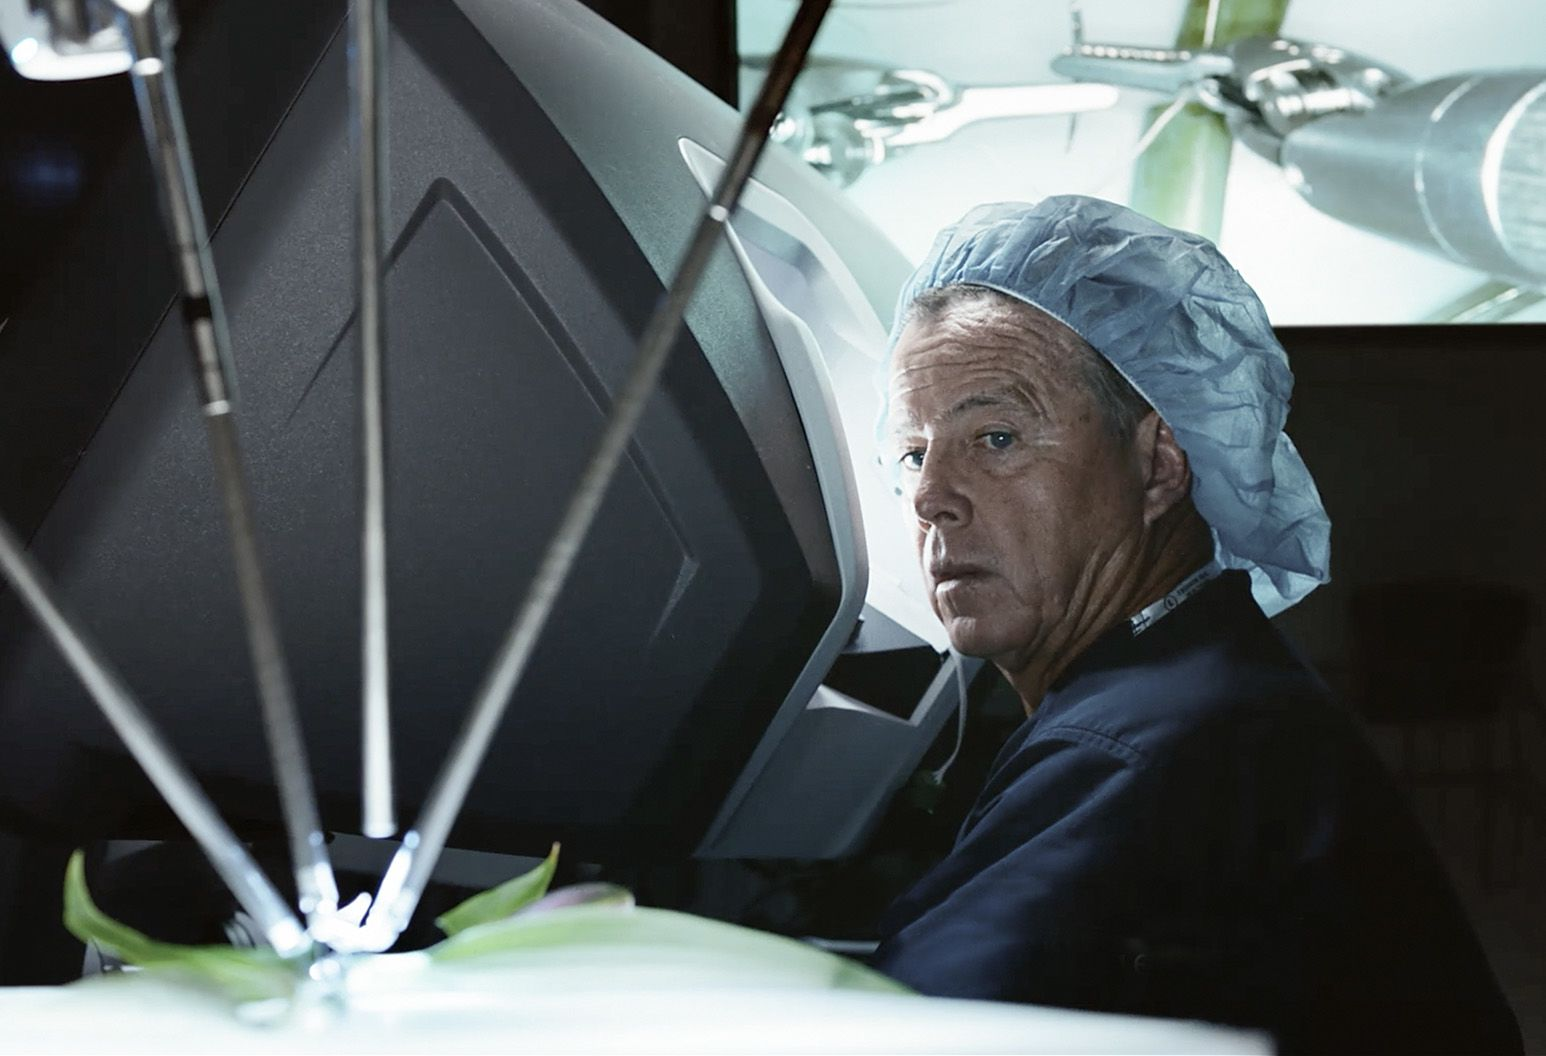 Male surgeon is seen standing next to robotic surgical equipment